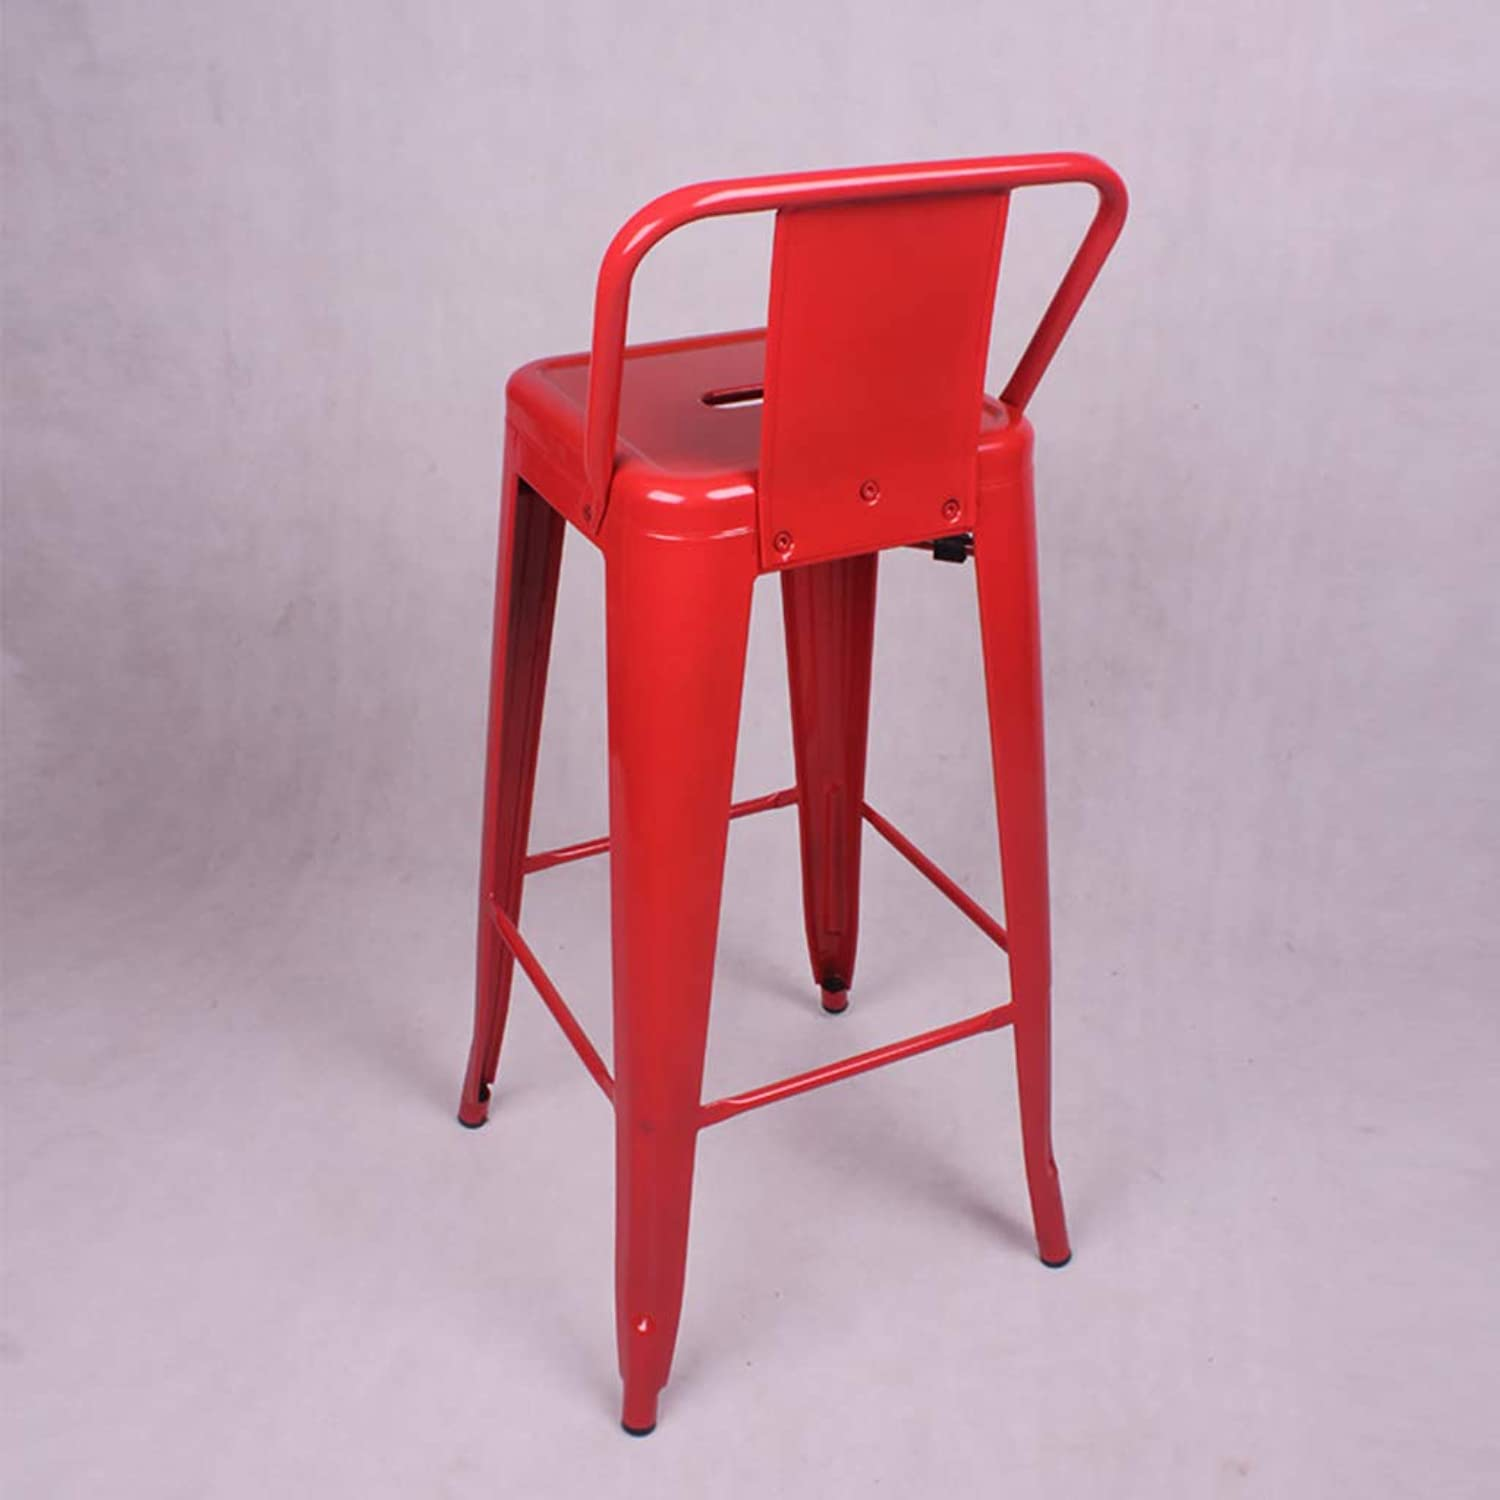 Short Back Bar Stool Bar Stool Iron Bar Chair Metal Malay Stool Fast Food Modern Minimalist Chair (color   RED)